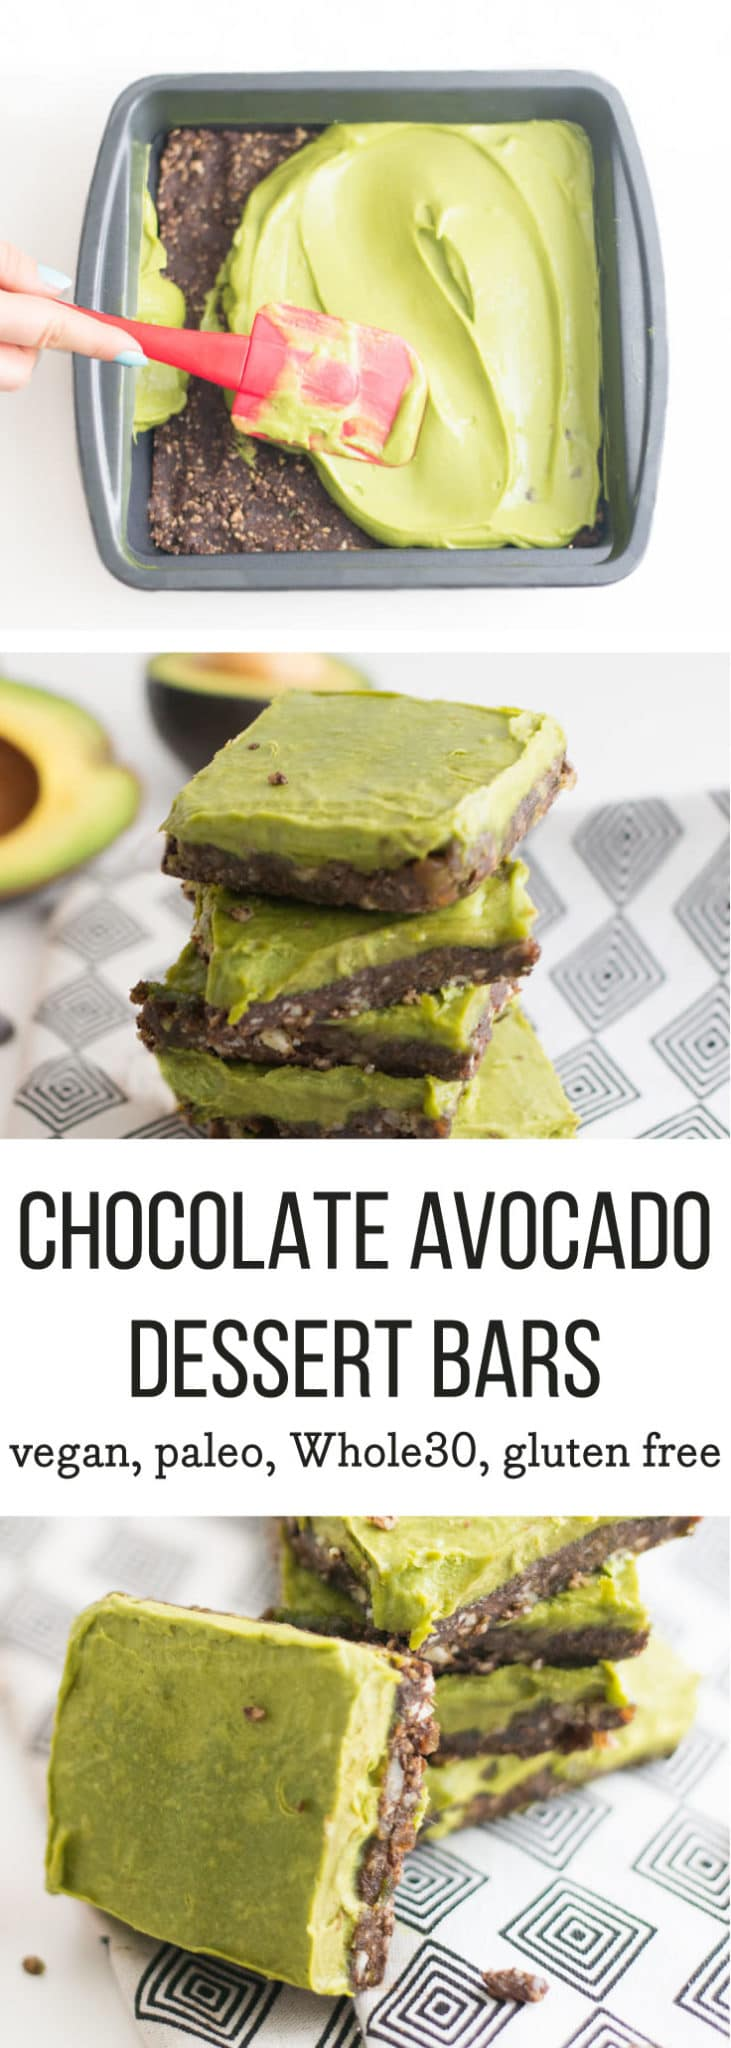 Chocolate Avocado Bars -- Creamy, chocolatey avocado bars are a healthy dessert without sacrificing flavor. These vegan, gluten free bars are everything. | mindfulavocado